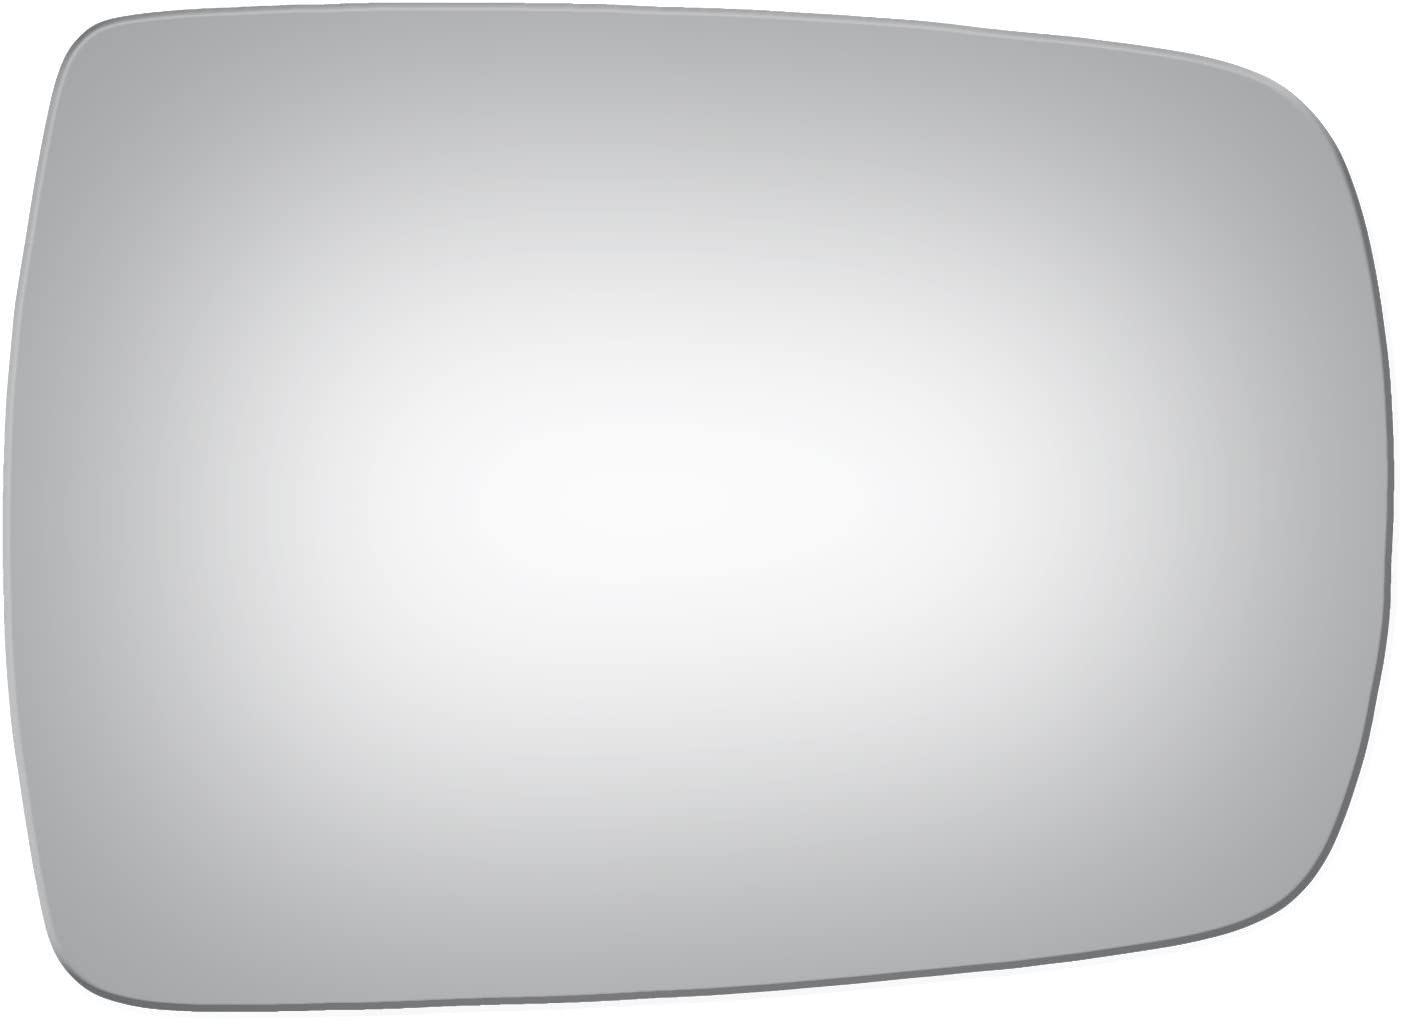 New Replacement Mirror Glass with FULL SIZE ADHESIVE for HYUNDAI ENTOURAGE KIA SEDONA Driver Side View Left LH